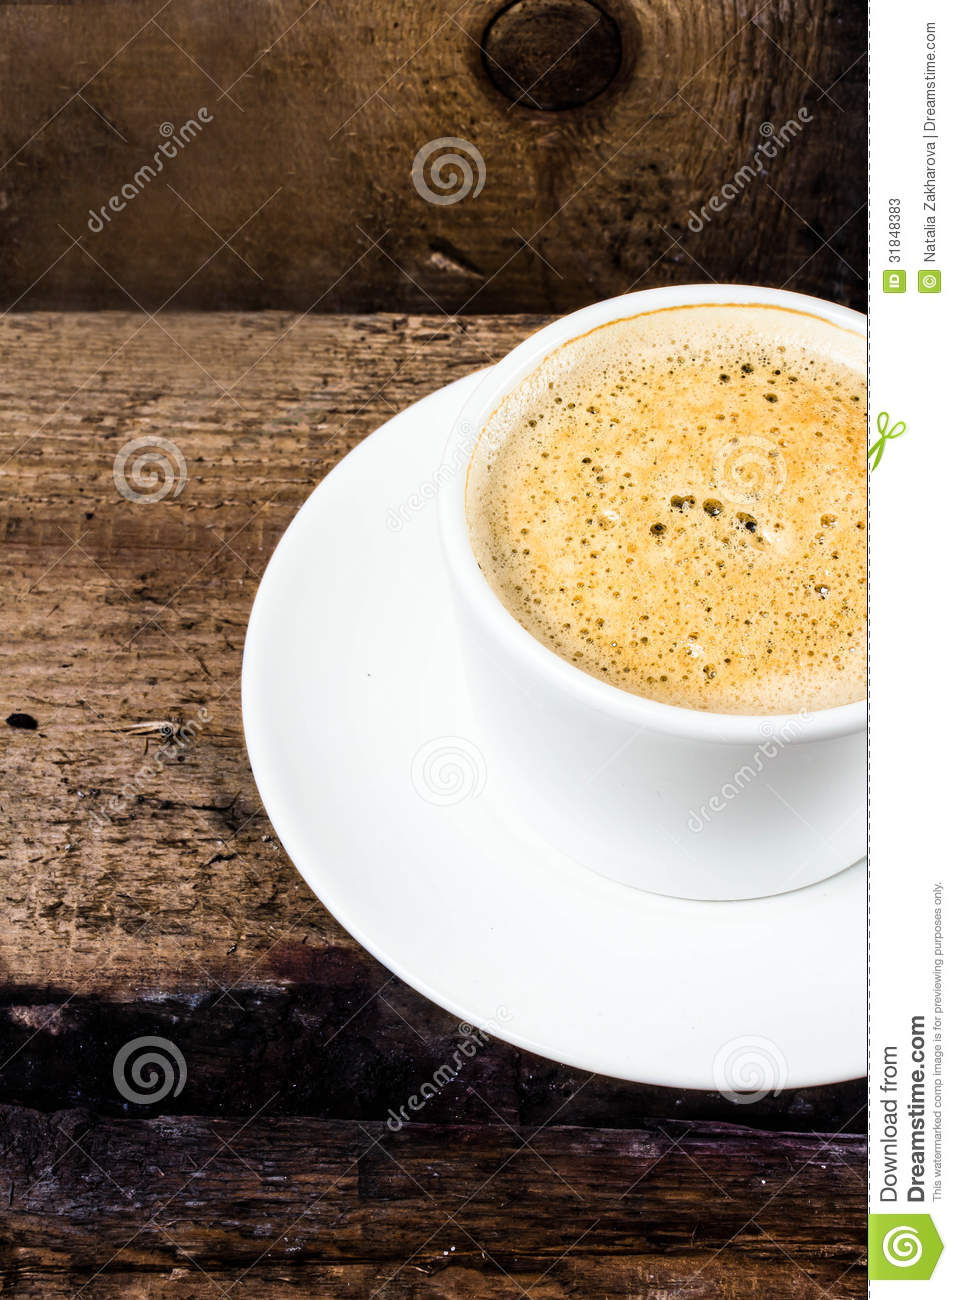 Closeup cup of espresso on old wooden table over grunge background, top view